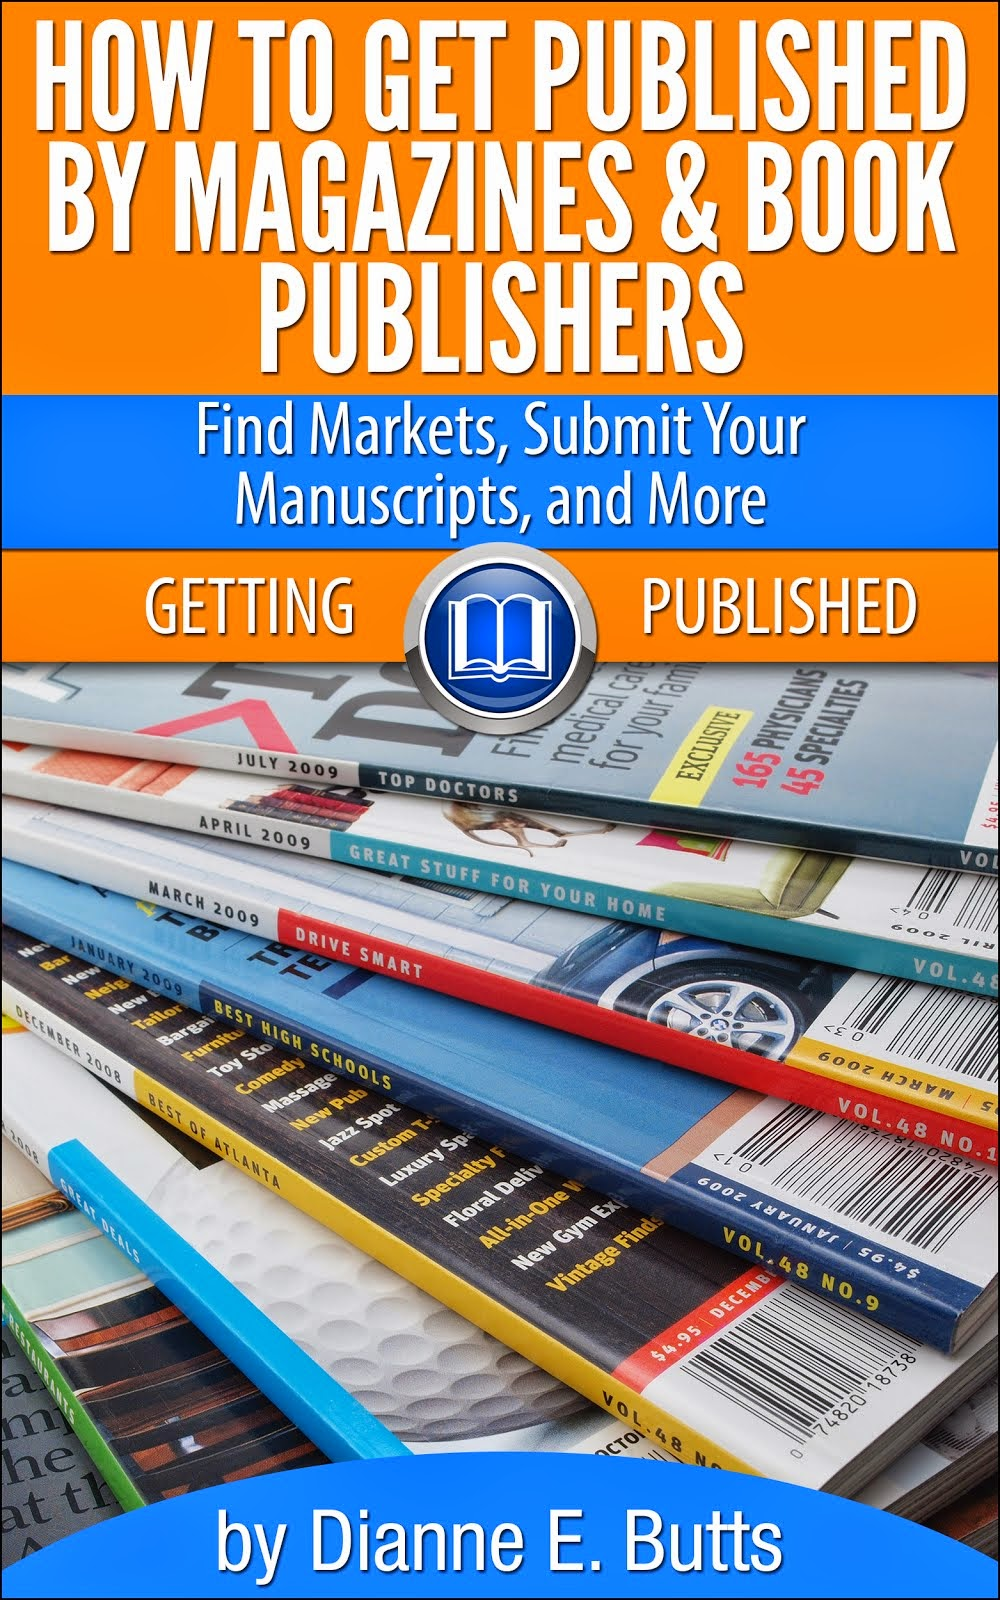 How to Get Published by Magazines & Book Publishers